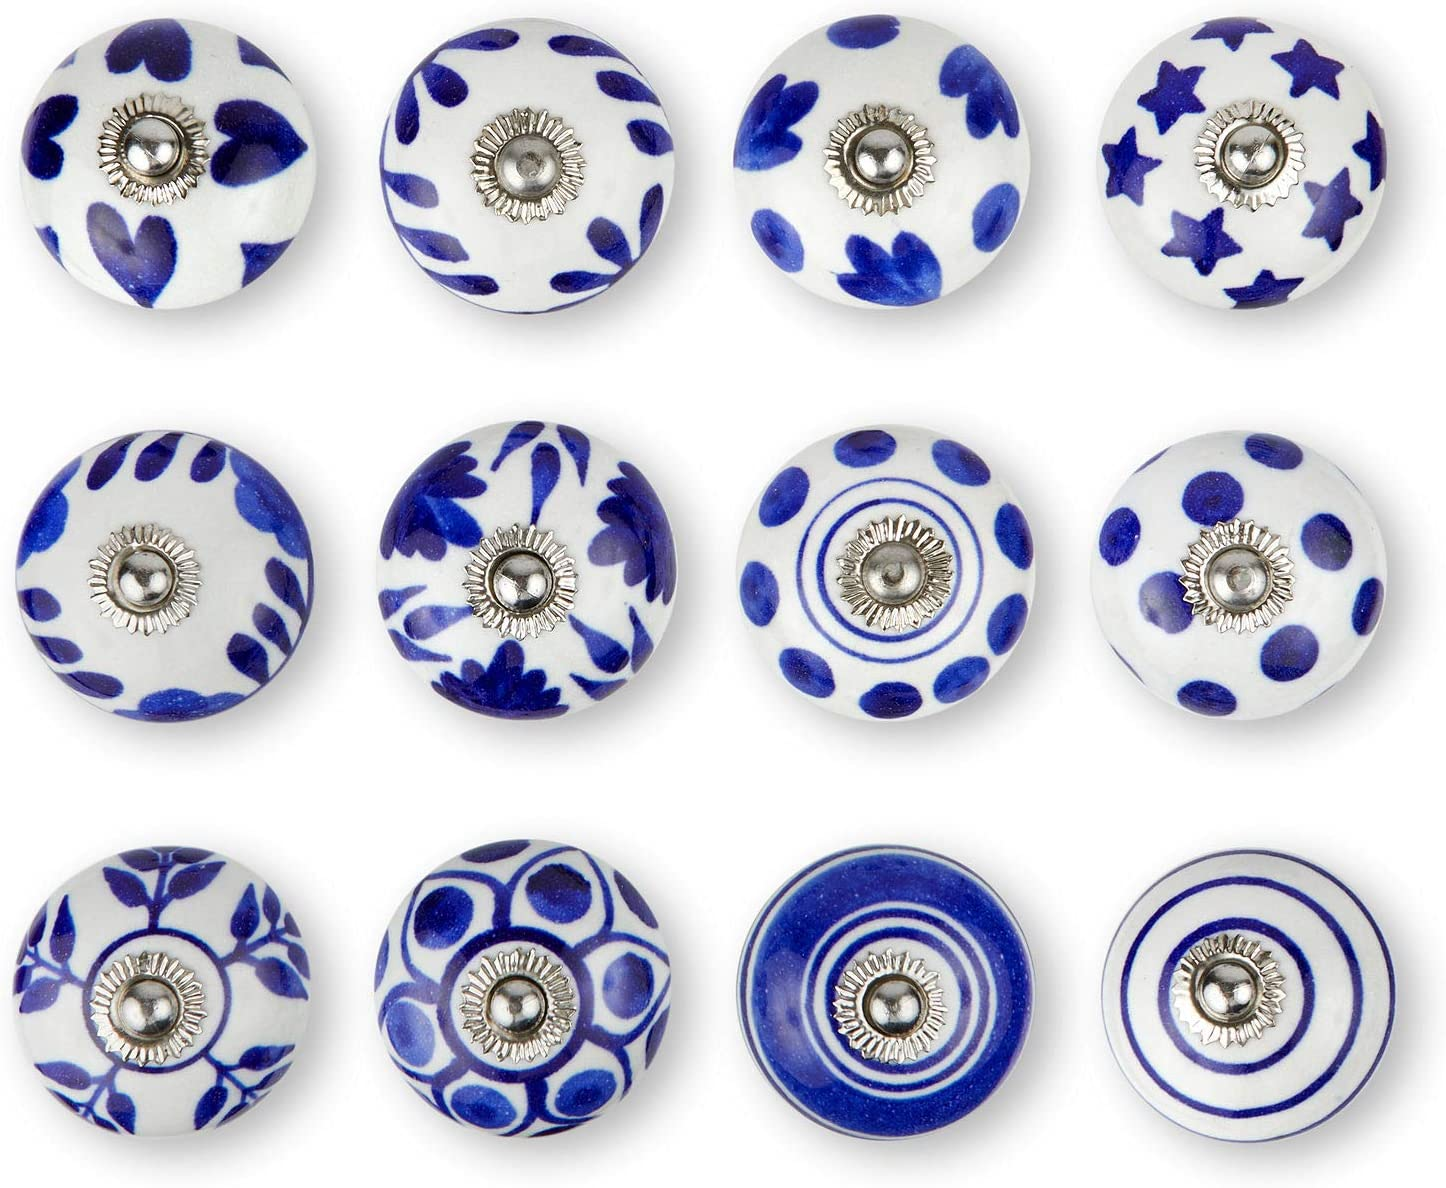 Set of 12 Handmade Ceramic Knobs | 3 Colour Design Ceramic Cabinet Knobs | Drawer Pulls for Home, Kitchen, Bathroom or Office | Drawer Knobs Comes with Wrench, Screw Cap & Extra Screws, Bolts (Blue)